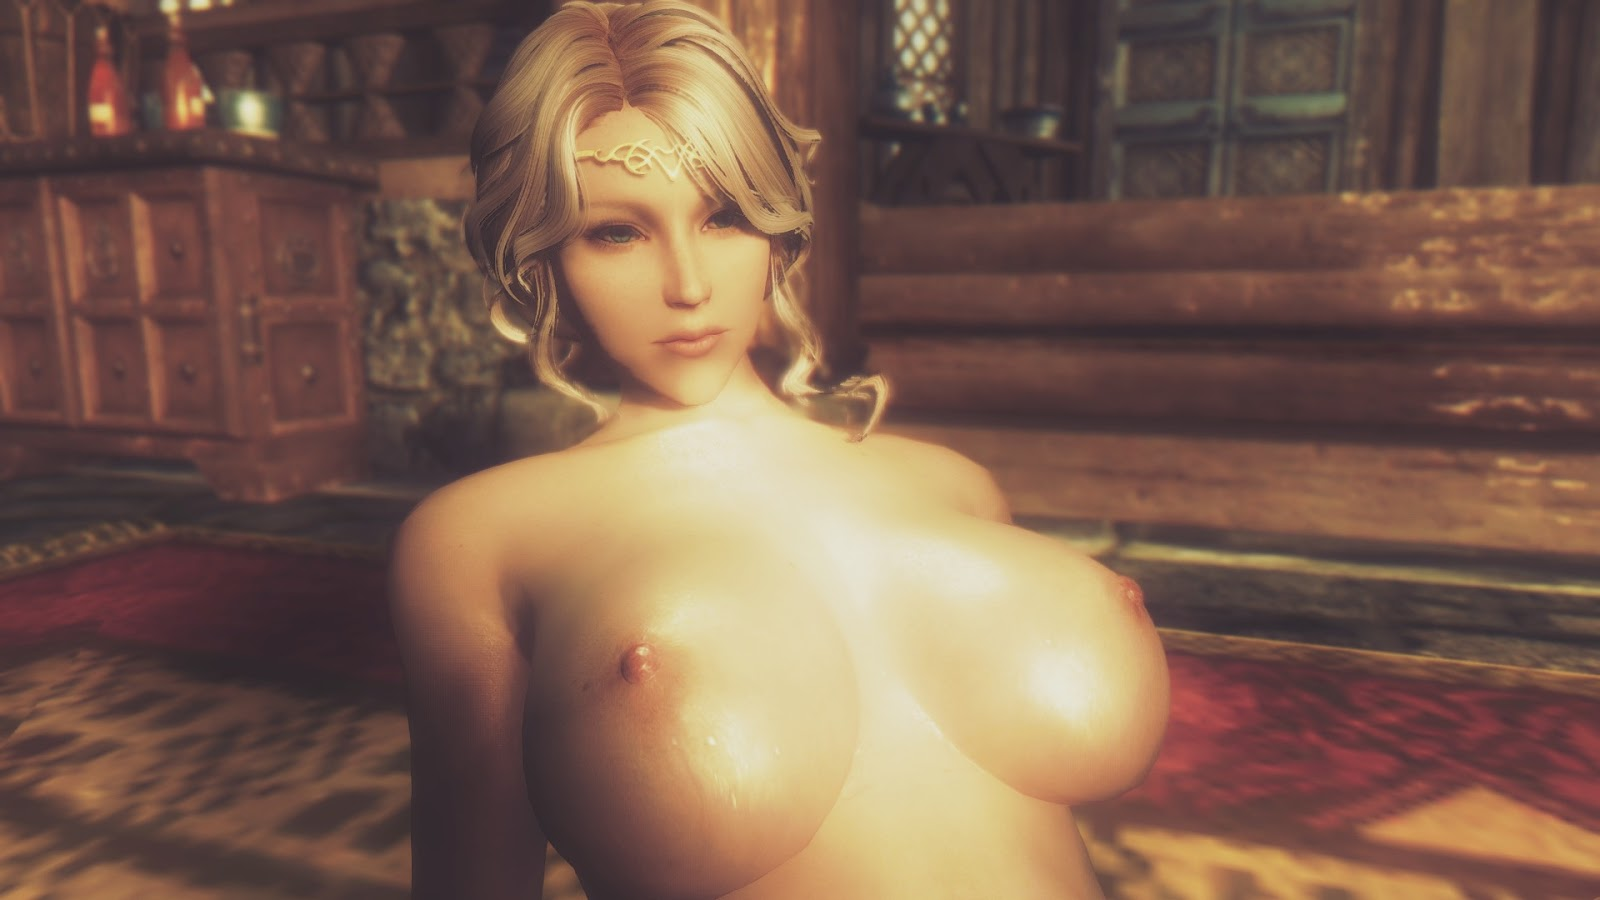 Skyrim nude models anime photos